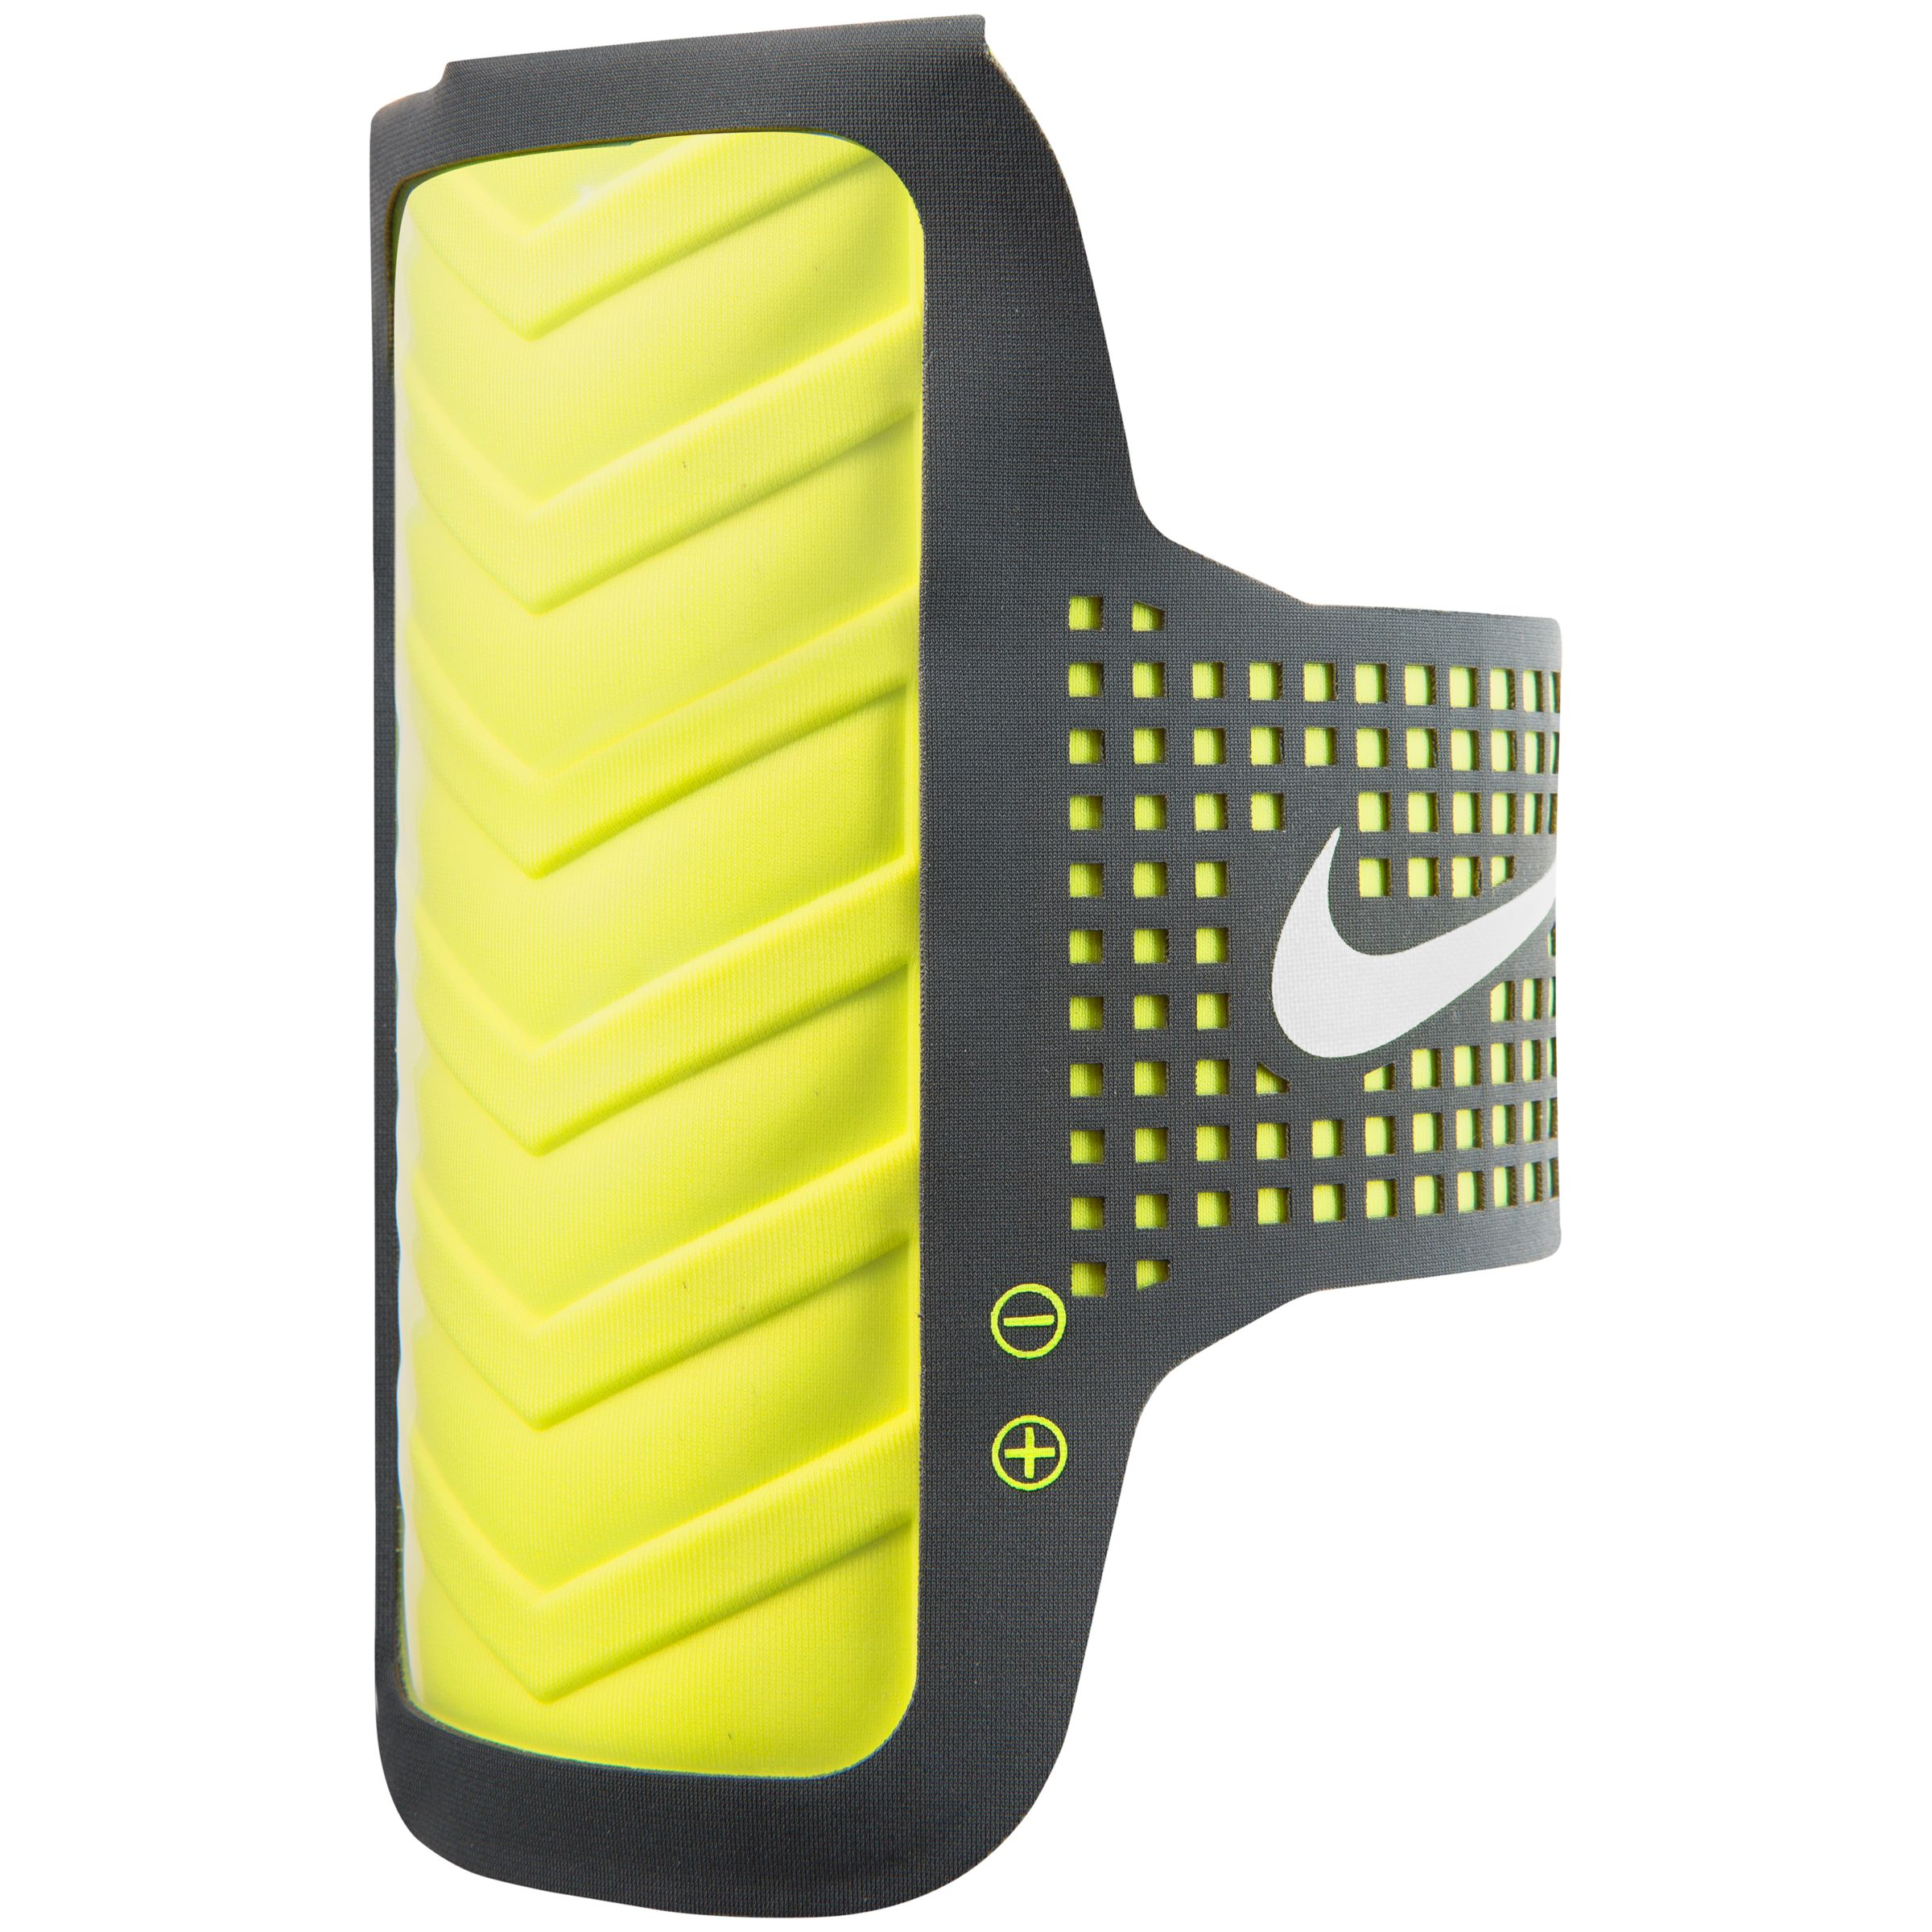 ristretto perline Ottimismo  Nike Distance Women's Running Armband for iPhone 6 at John Lewis & Partners